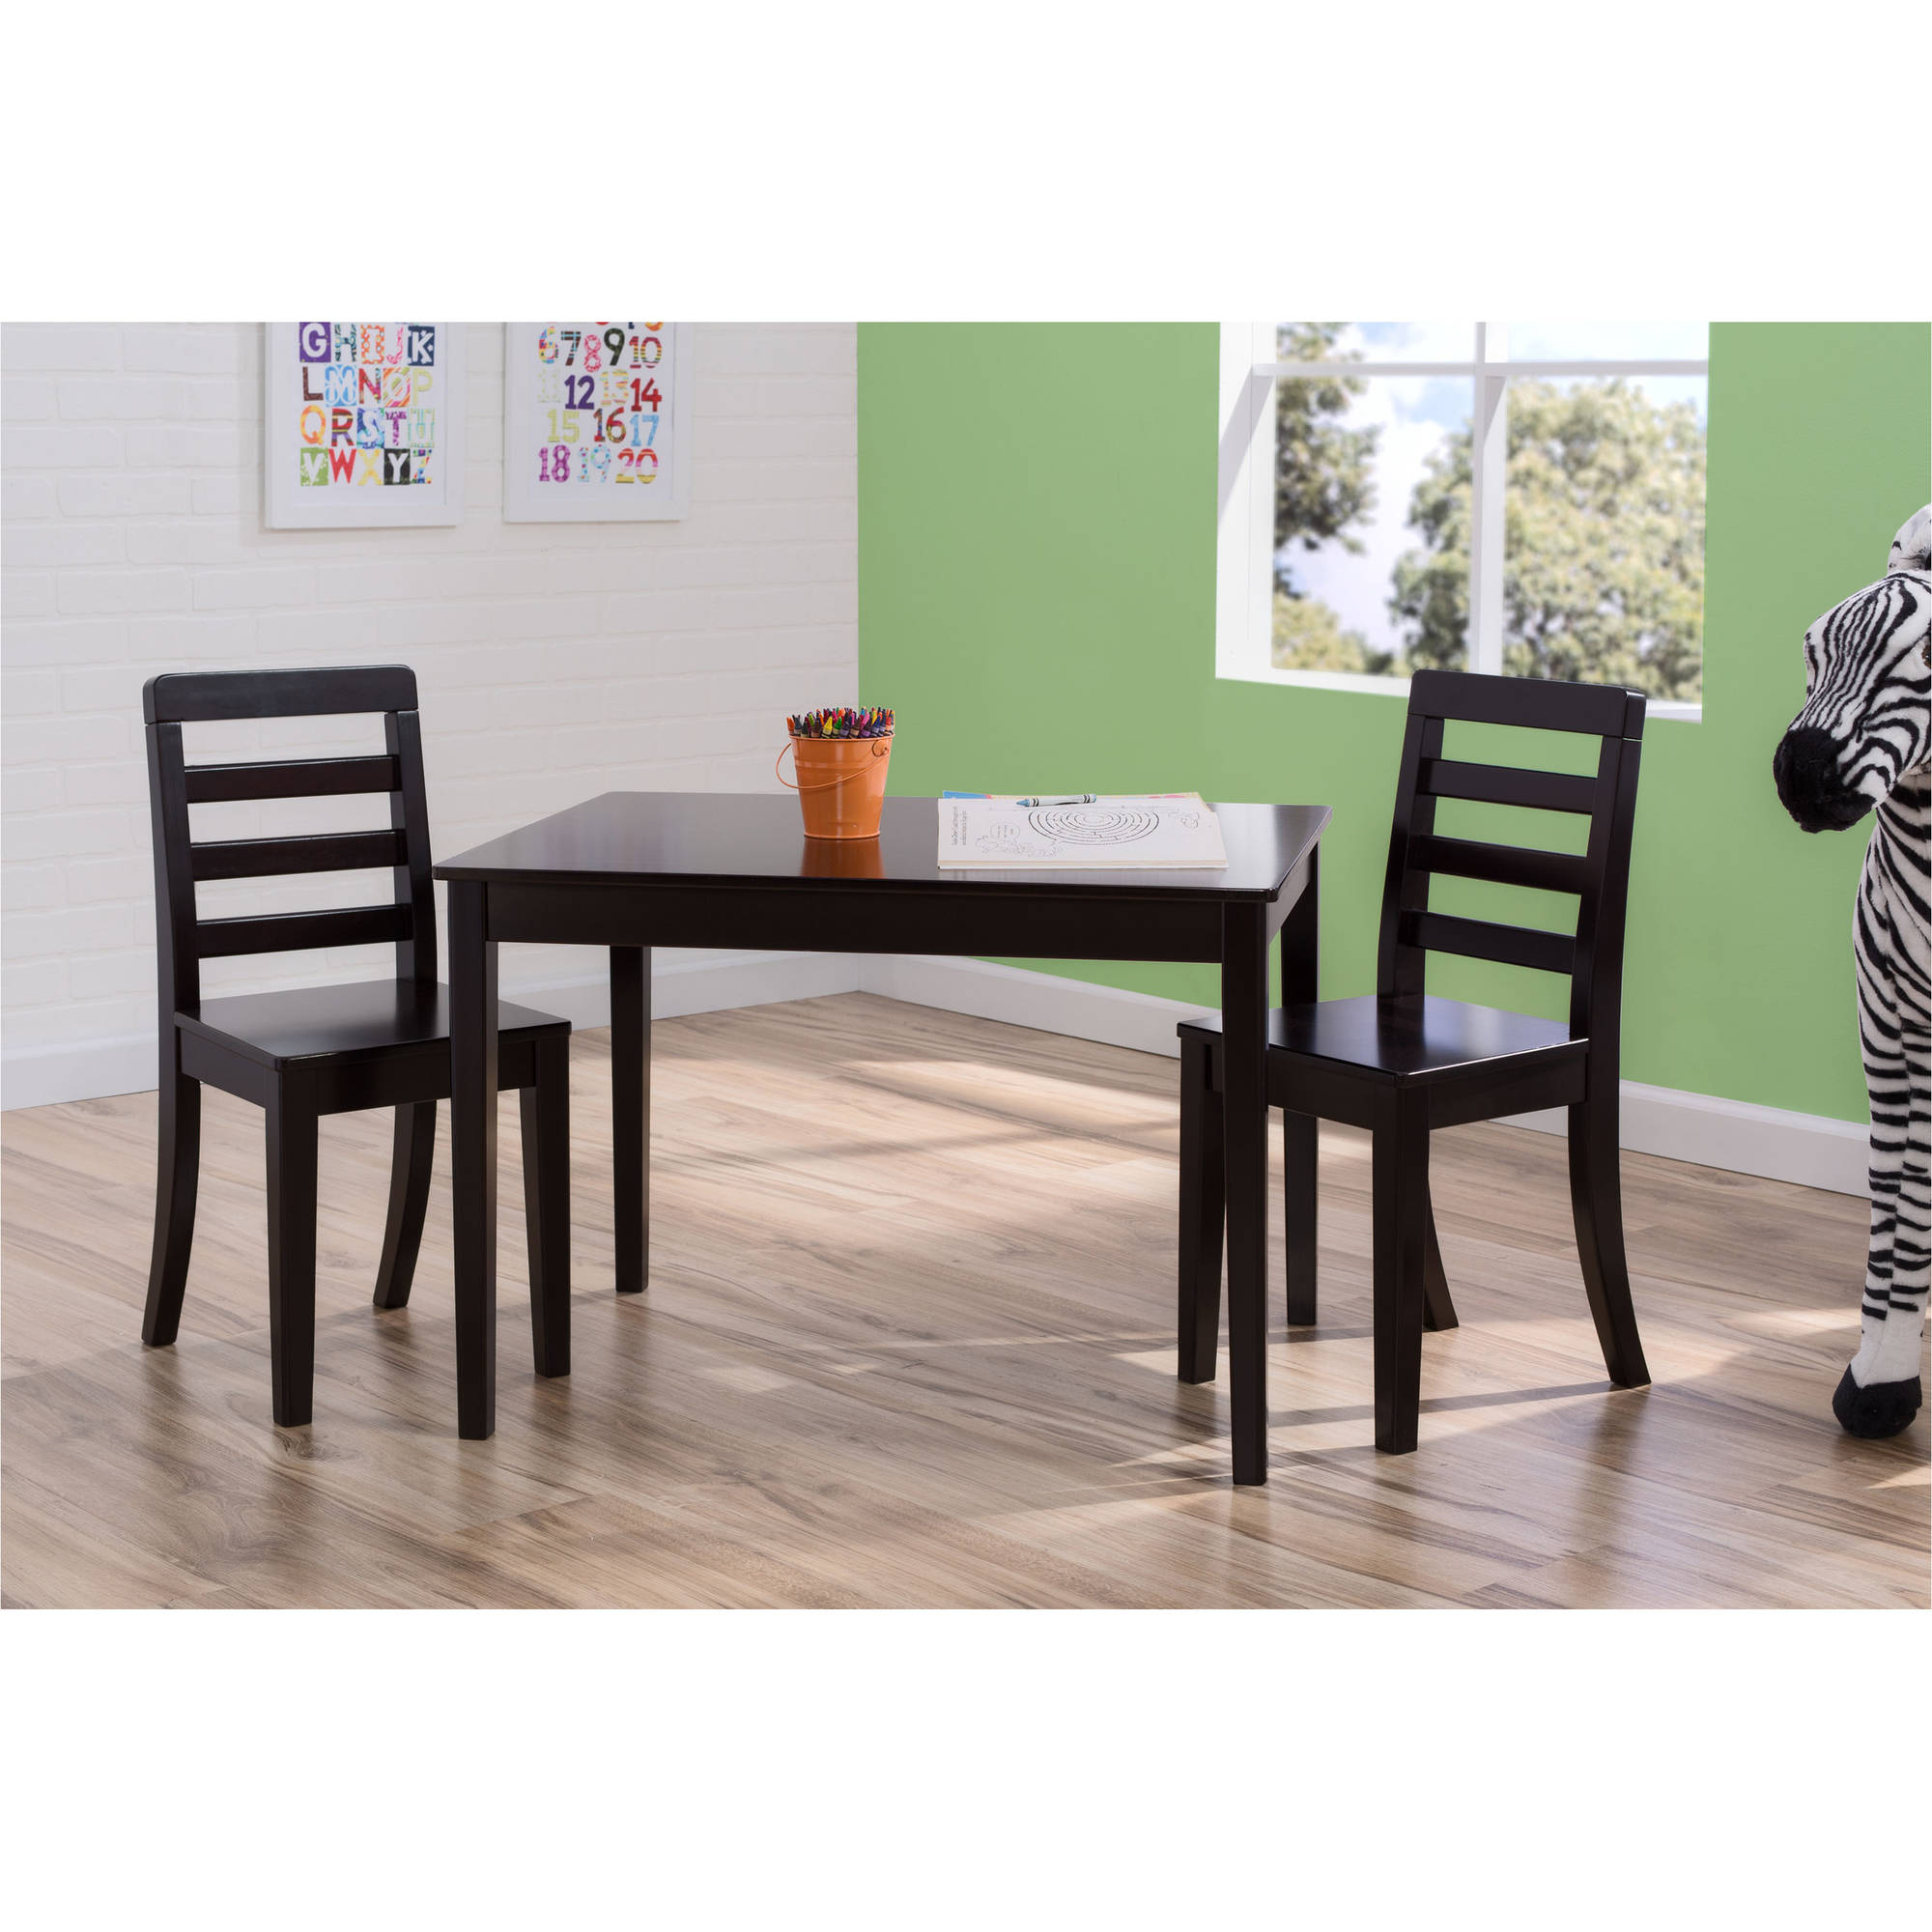 Kids Table And Chairs Set Espresso: Delta Children Gateway Table And 2 Chairs Set, Espresso